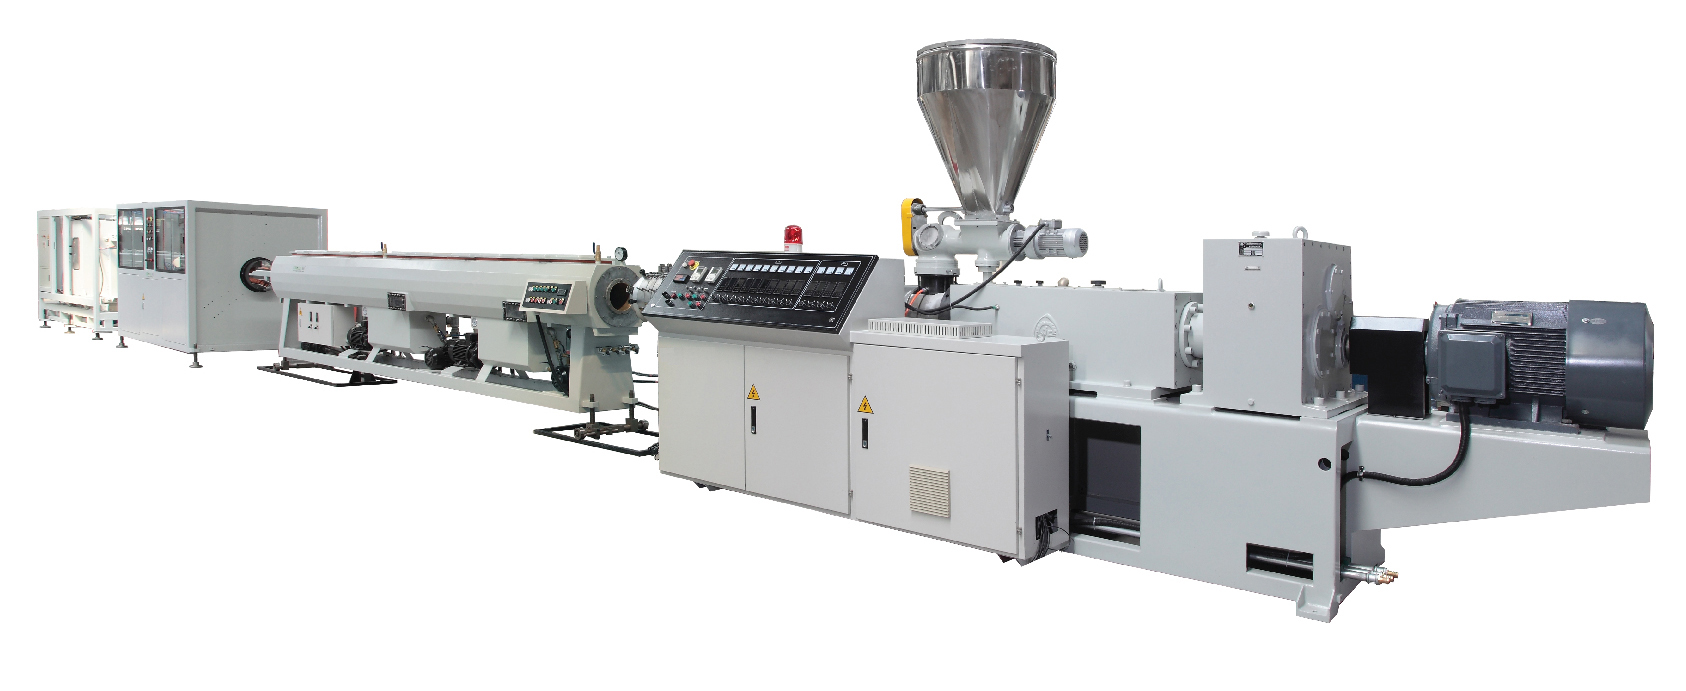 Pvc Pipe Extrusion : Pvc pipe extrusion production line buy machine